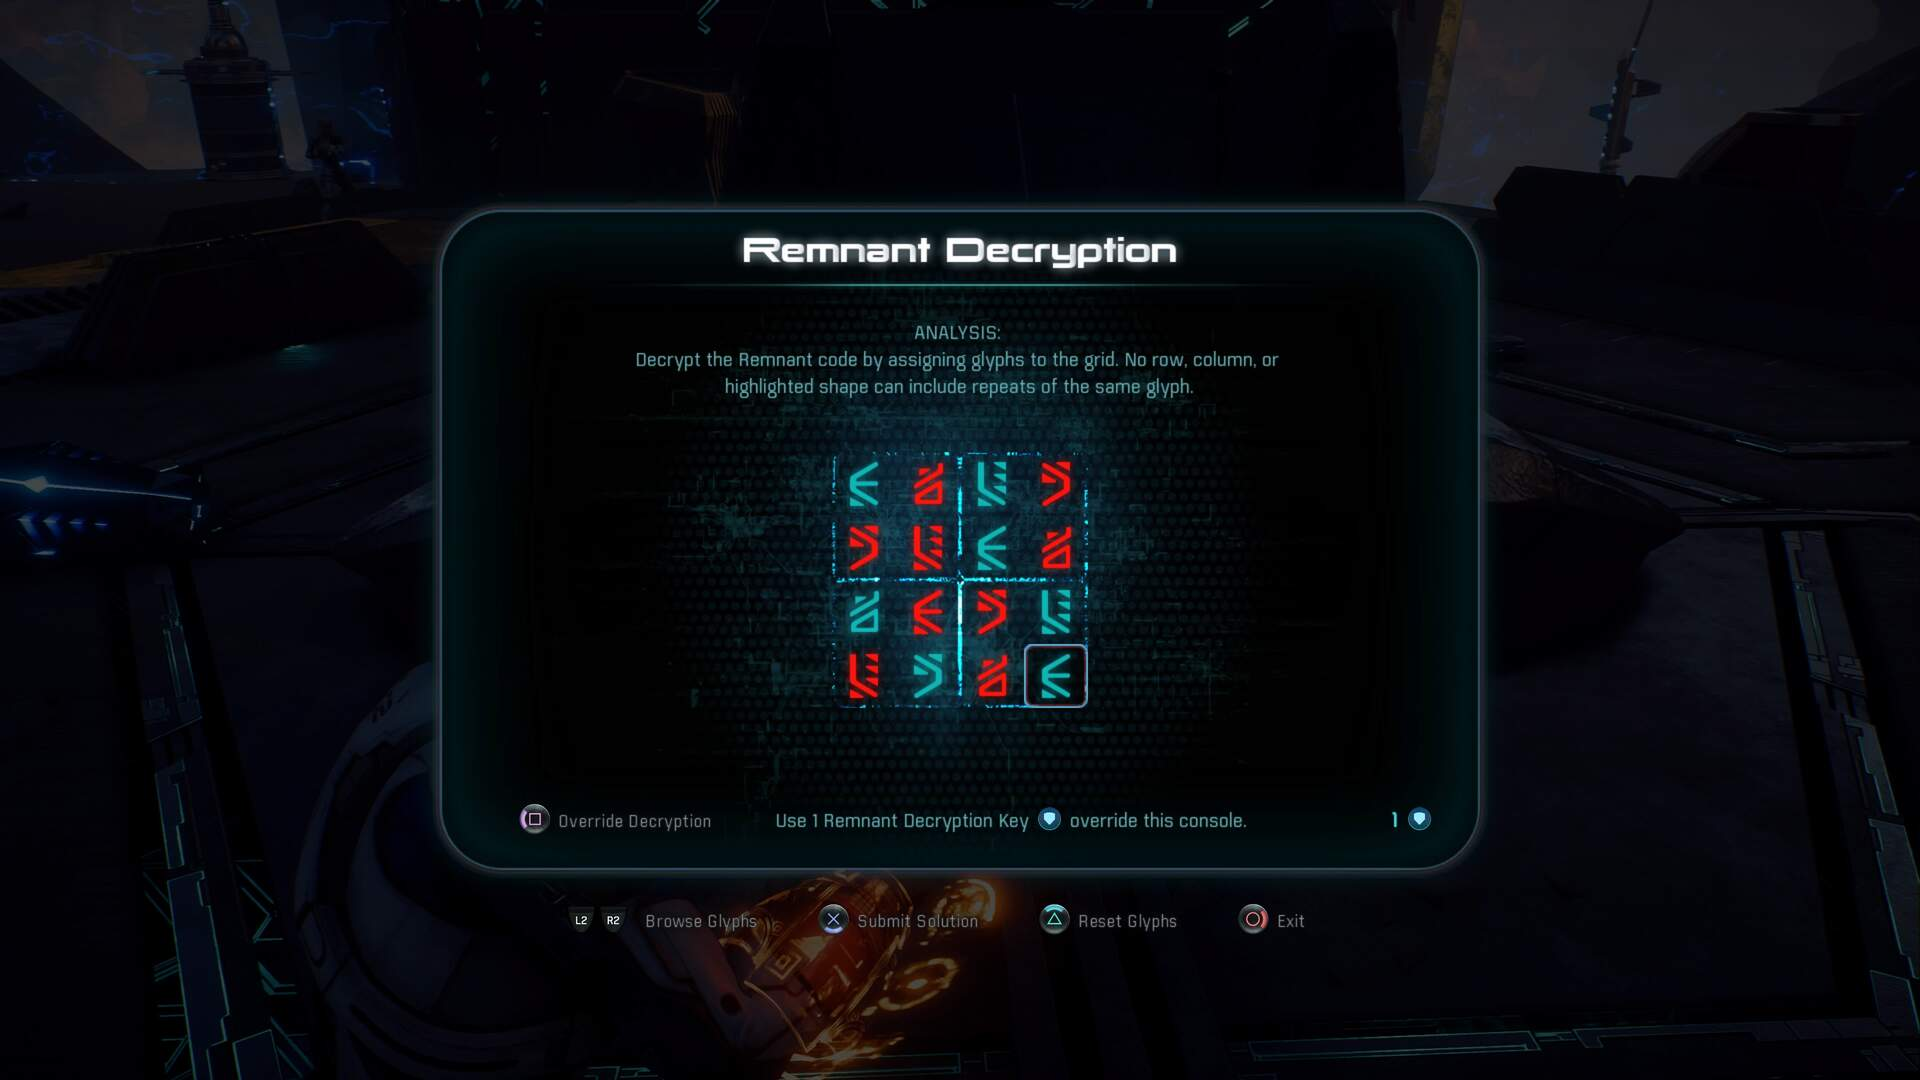 Mass Effect Andromeda Remnant Decryption - How to Solve Puzzles, Find Glyphs, Locations, Hints and Tips